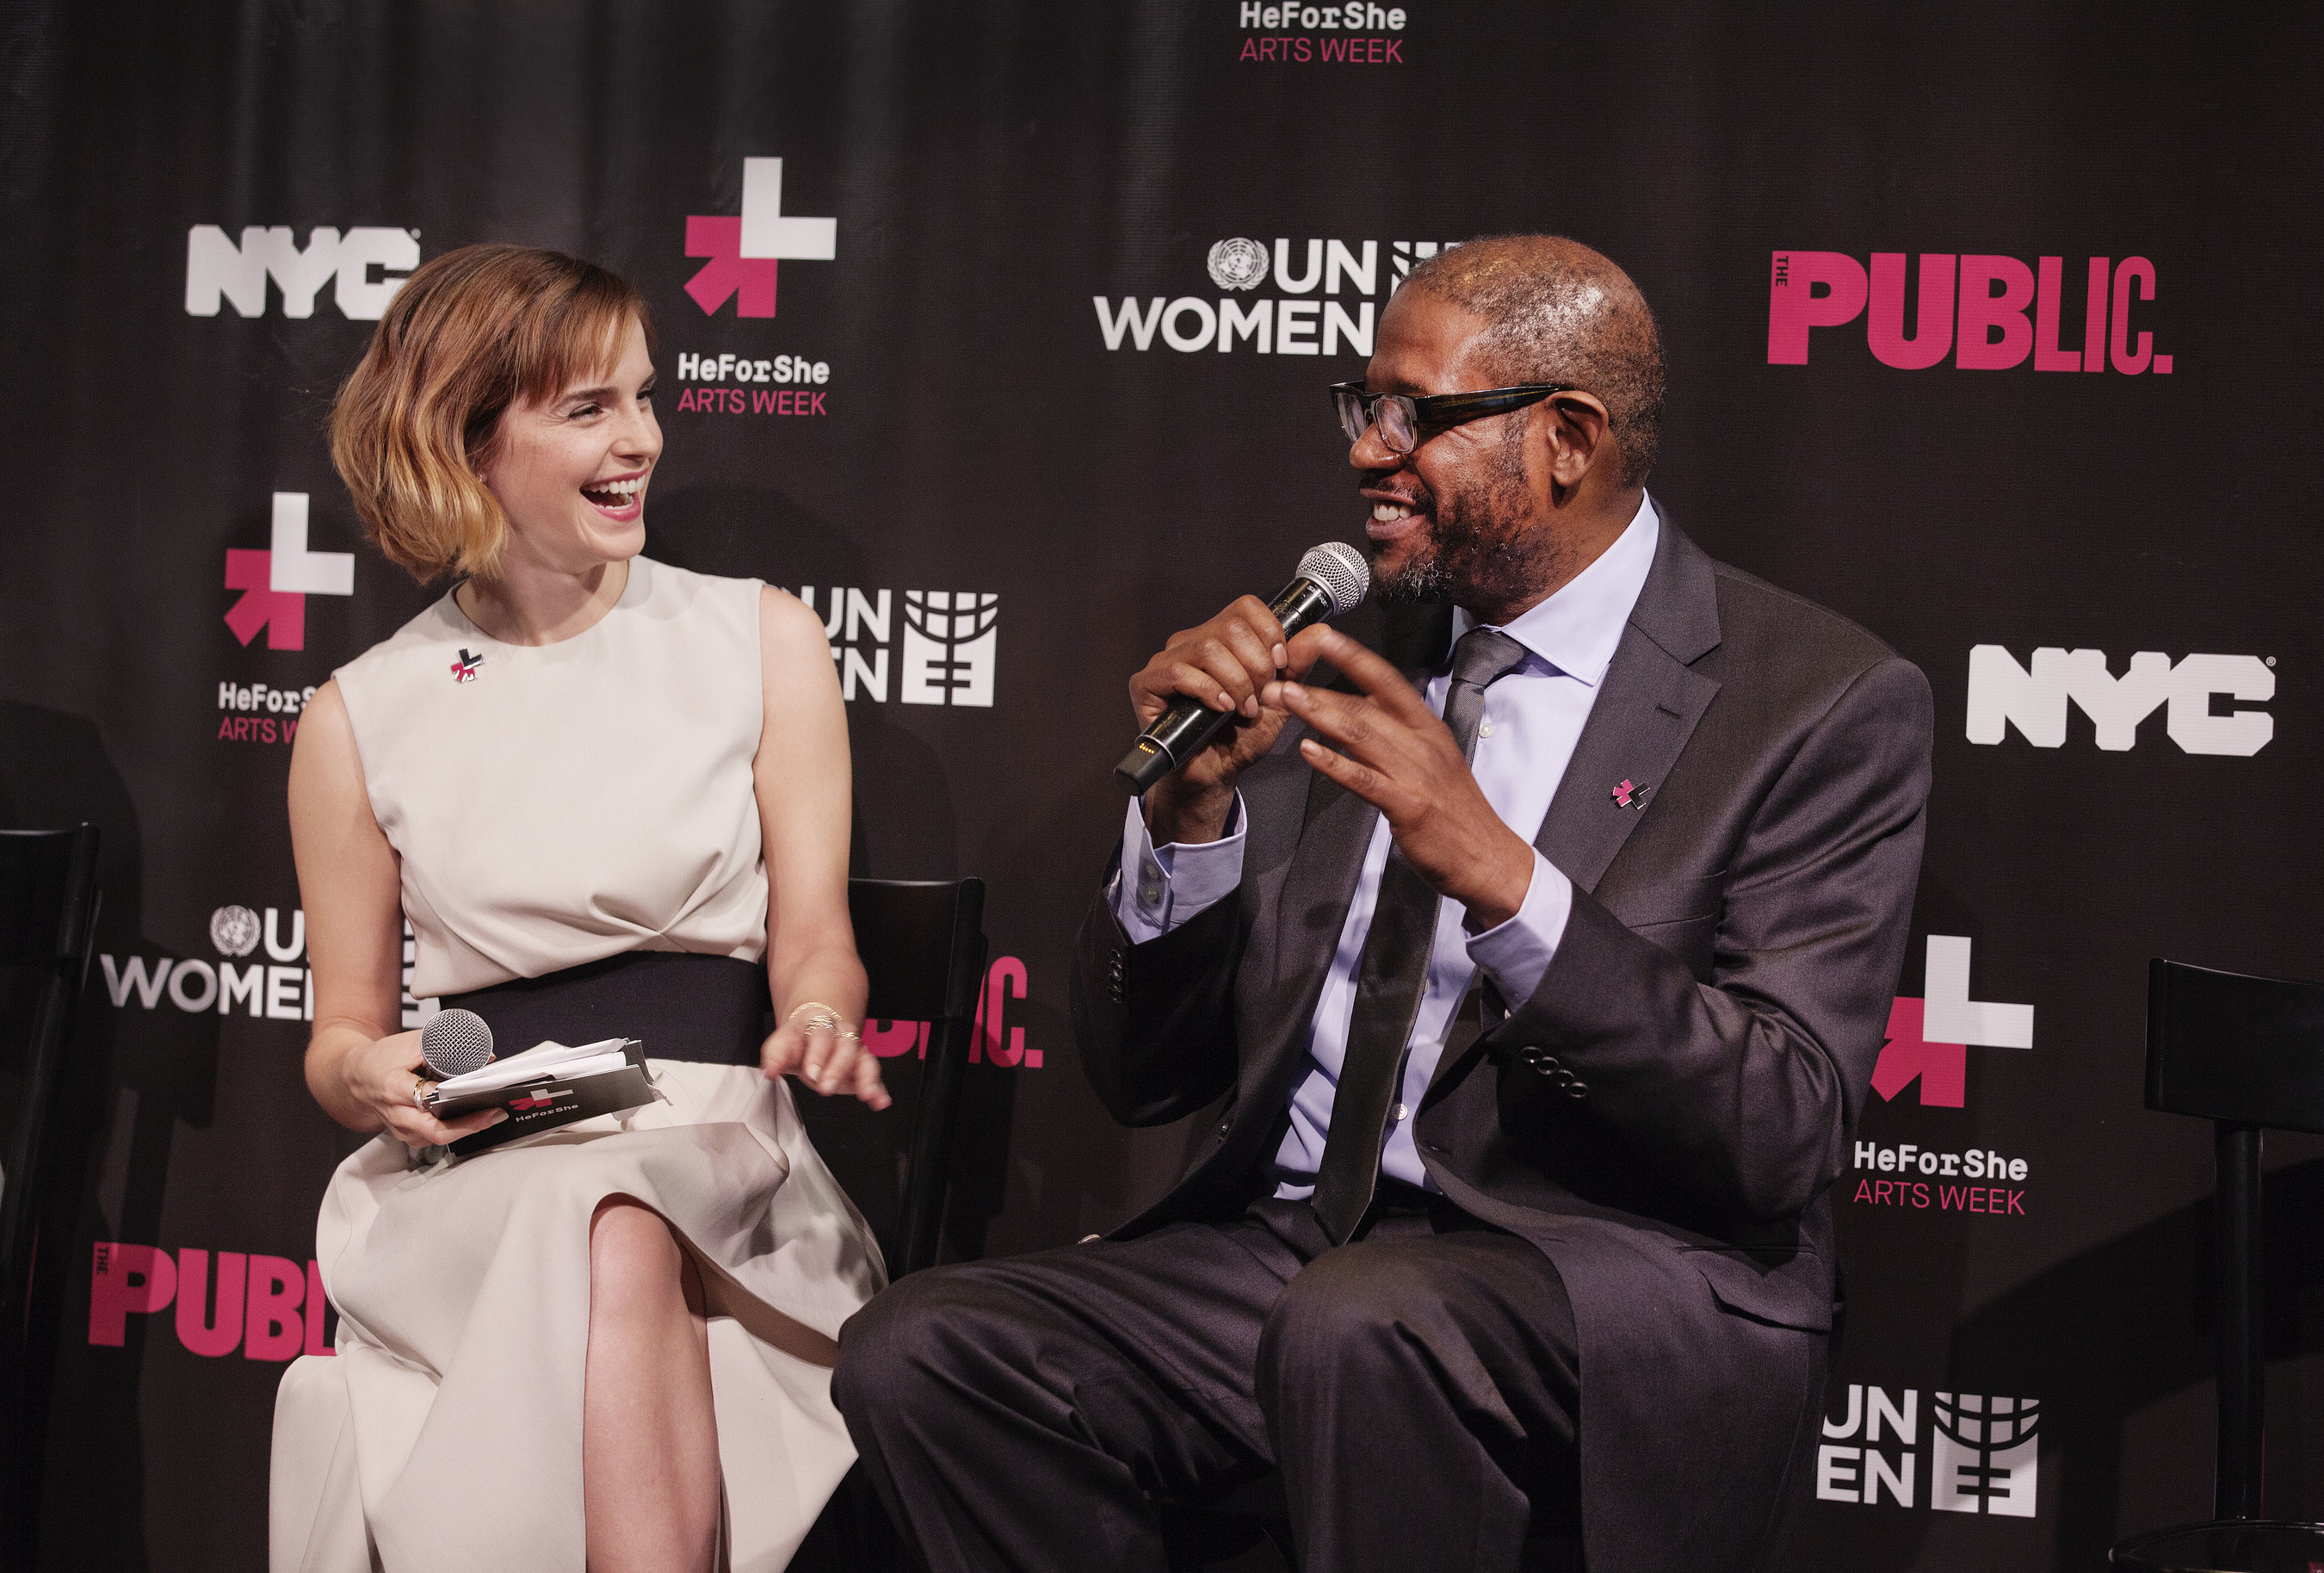 UN Women Goodwill Ambassador Emma Watson, SDG Advocate and UNESCO Special Envoy for Peace Forest Whitaker discuss issues of gender equality at the launch of HeForShe Arts Week on International Women's Day